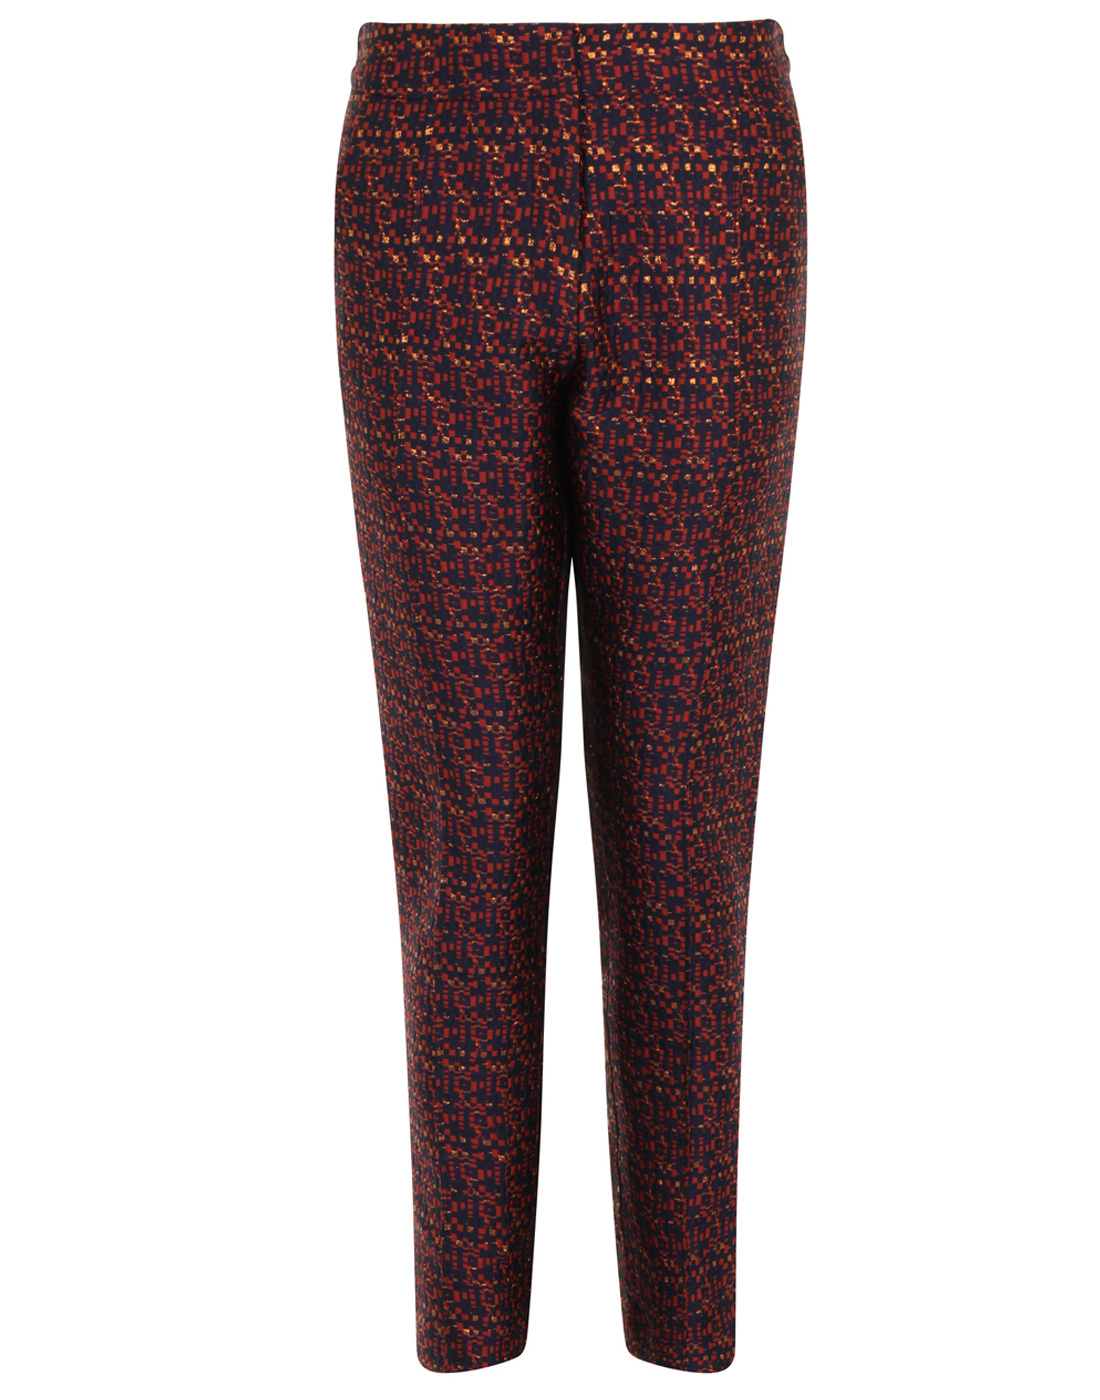 Lorraine DARLING Retro Metallic Textured Trousers